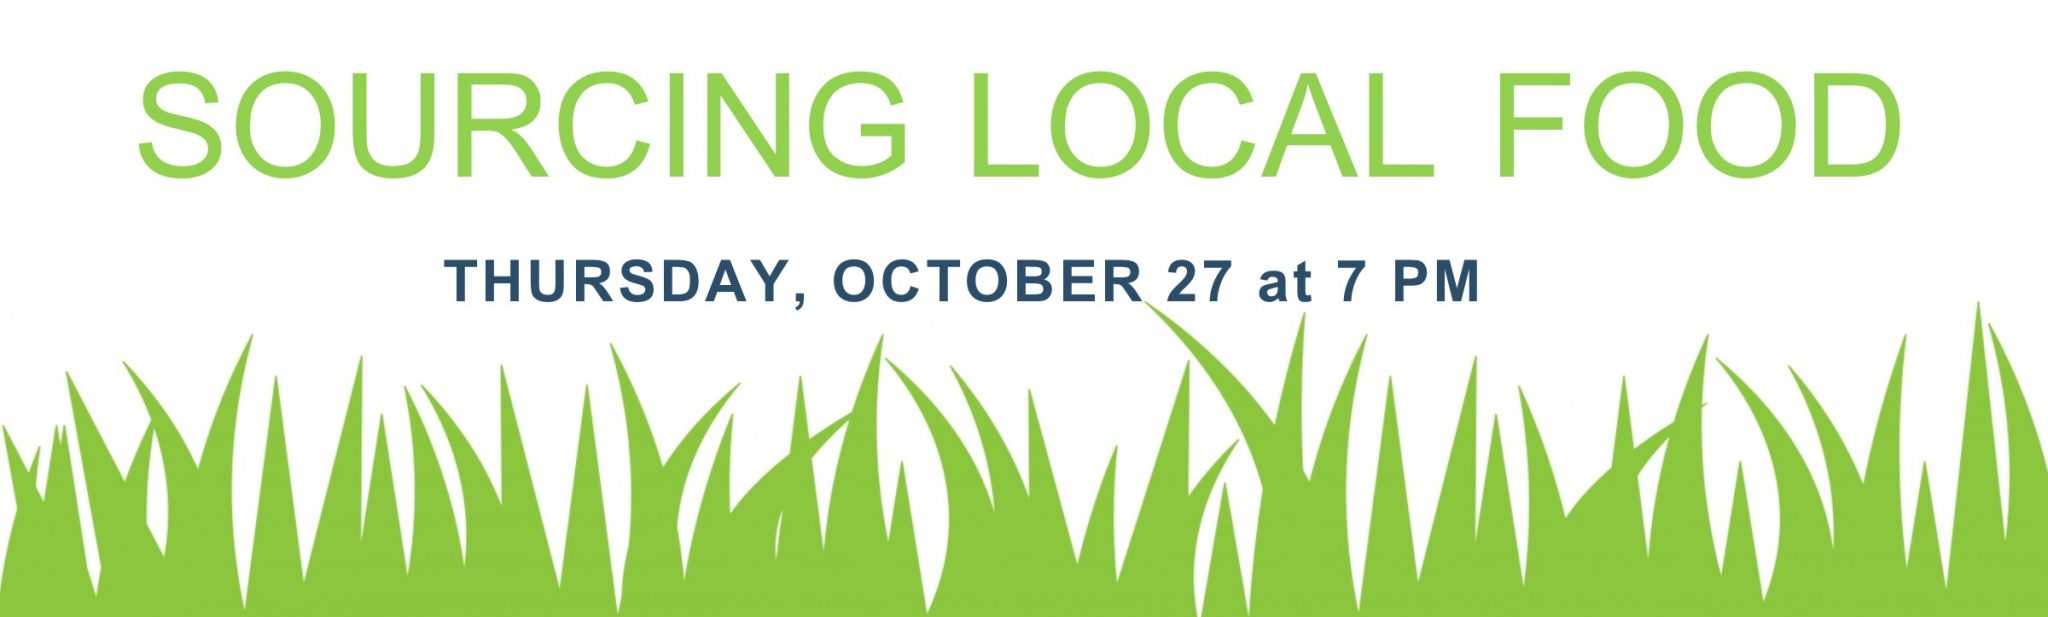 10-27-16 Sourcing Local